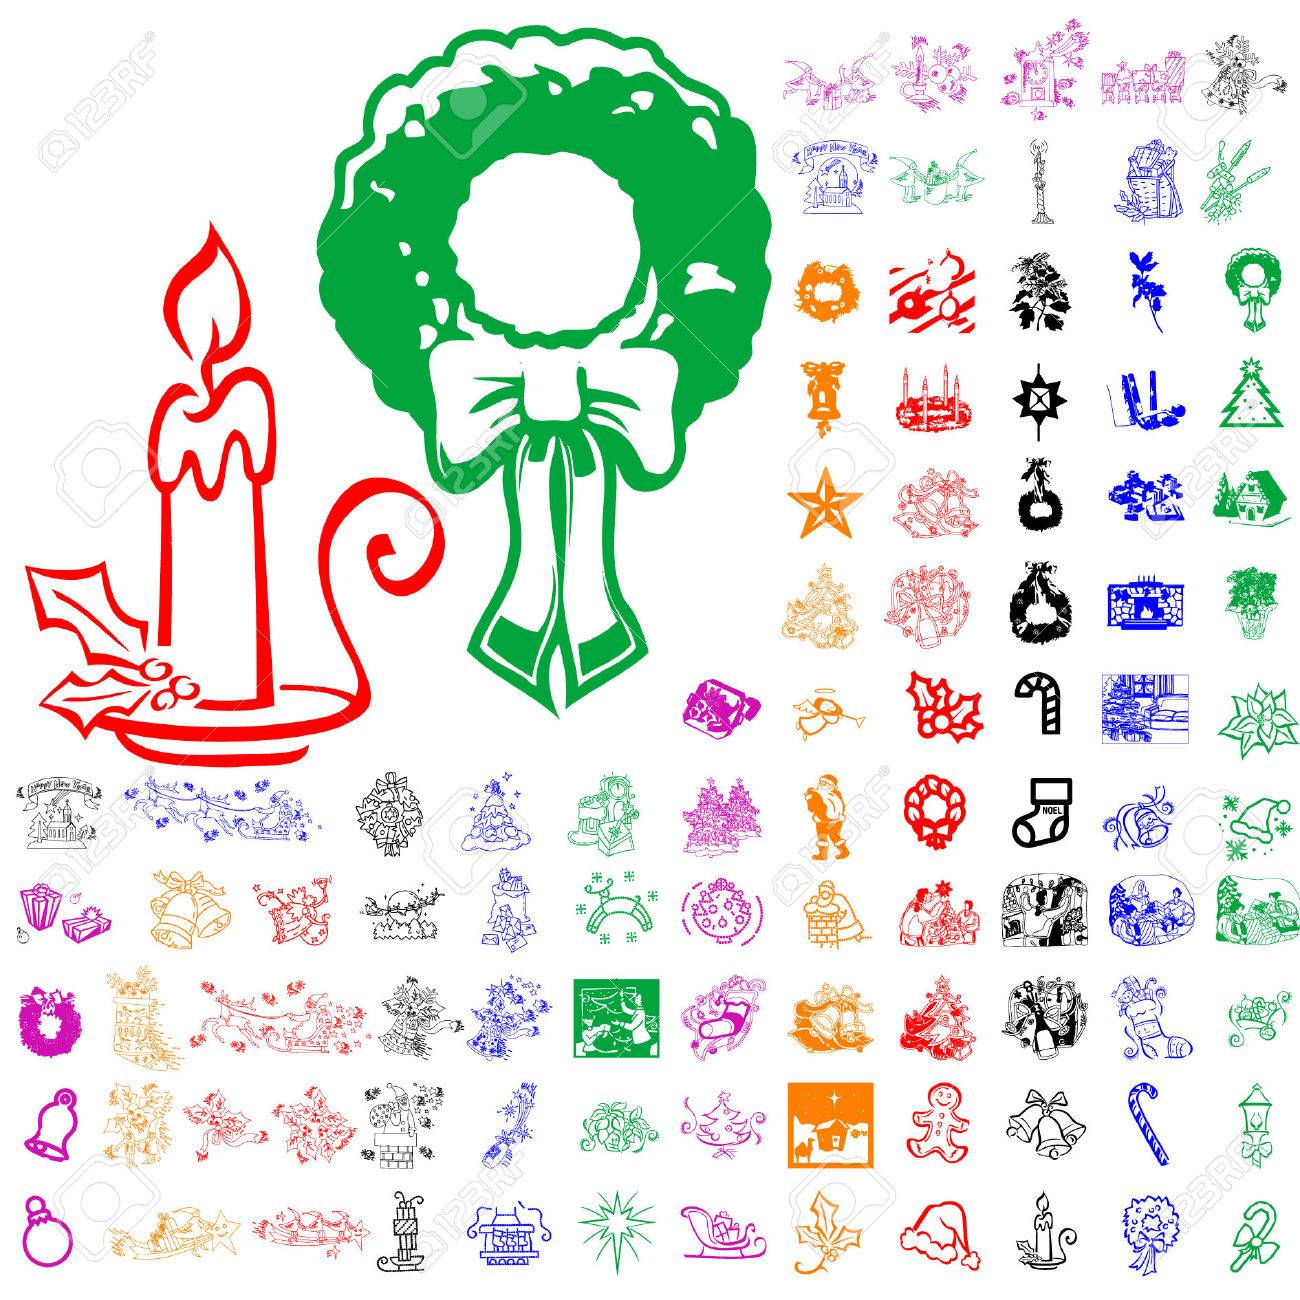 Set of Christmas sketches. Part 5. Isolated groups and layers. Global colors. Stock Vector - 5184455